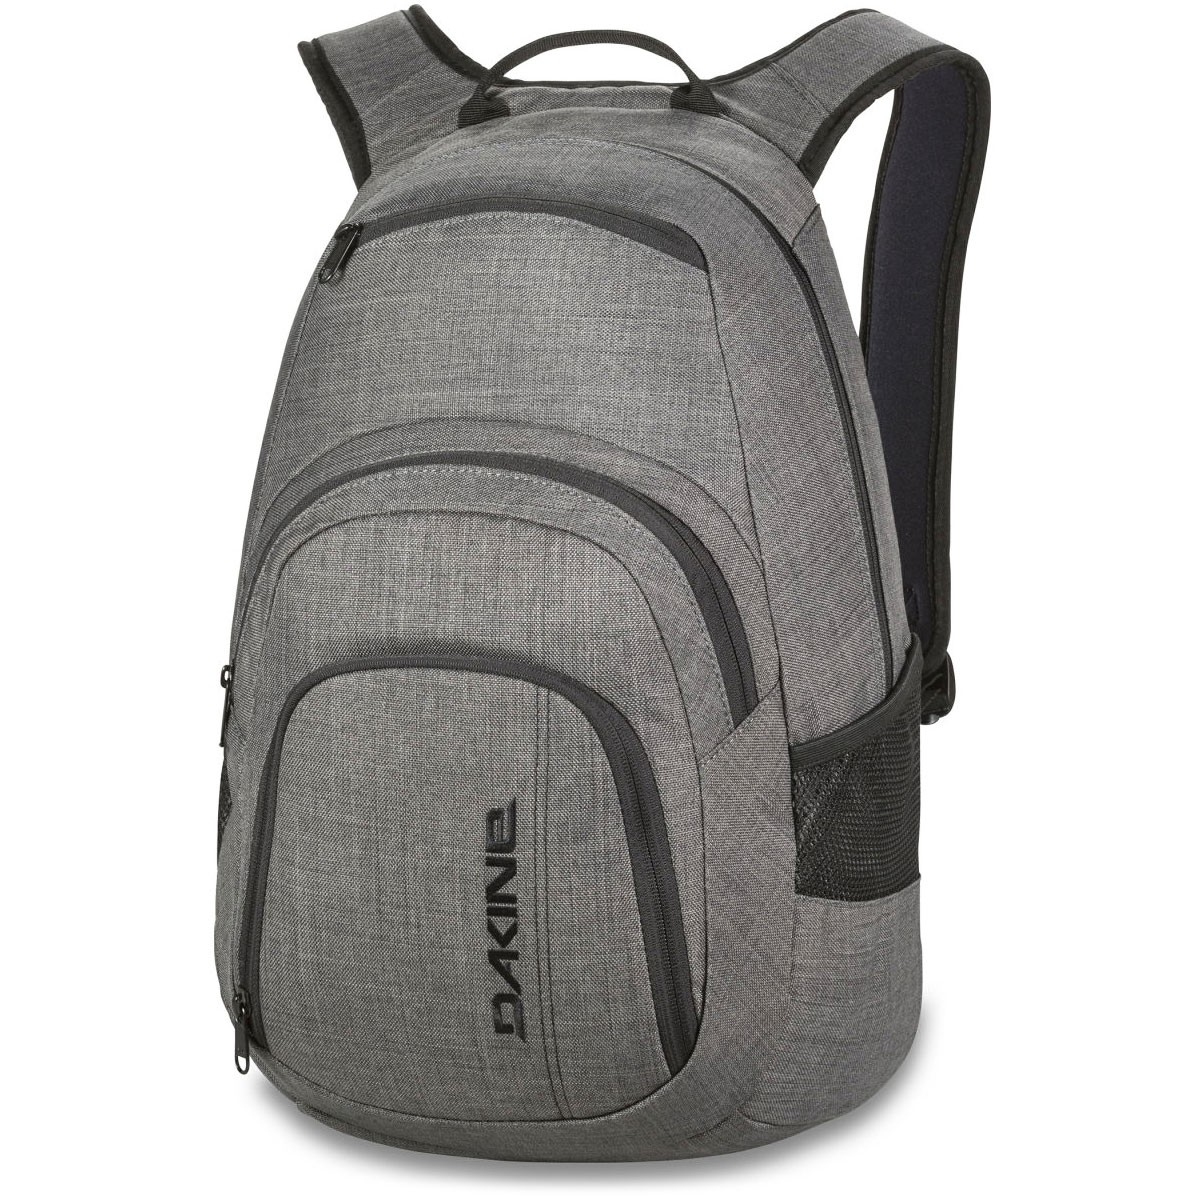 dakine-campus-33l-backpack-carbon-1.1506701494.jpg 85b867950f